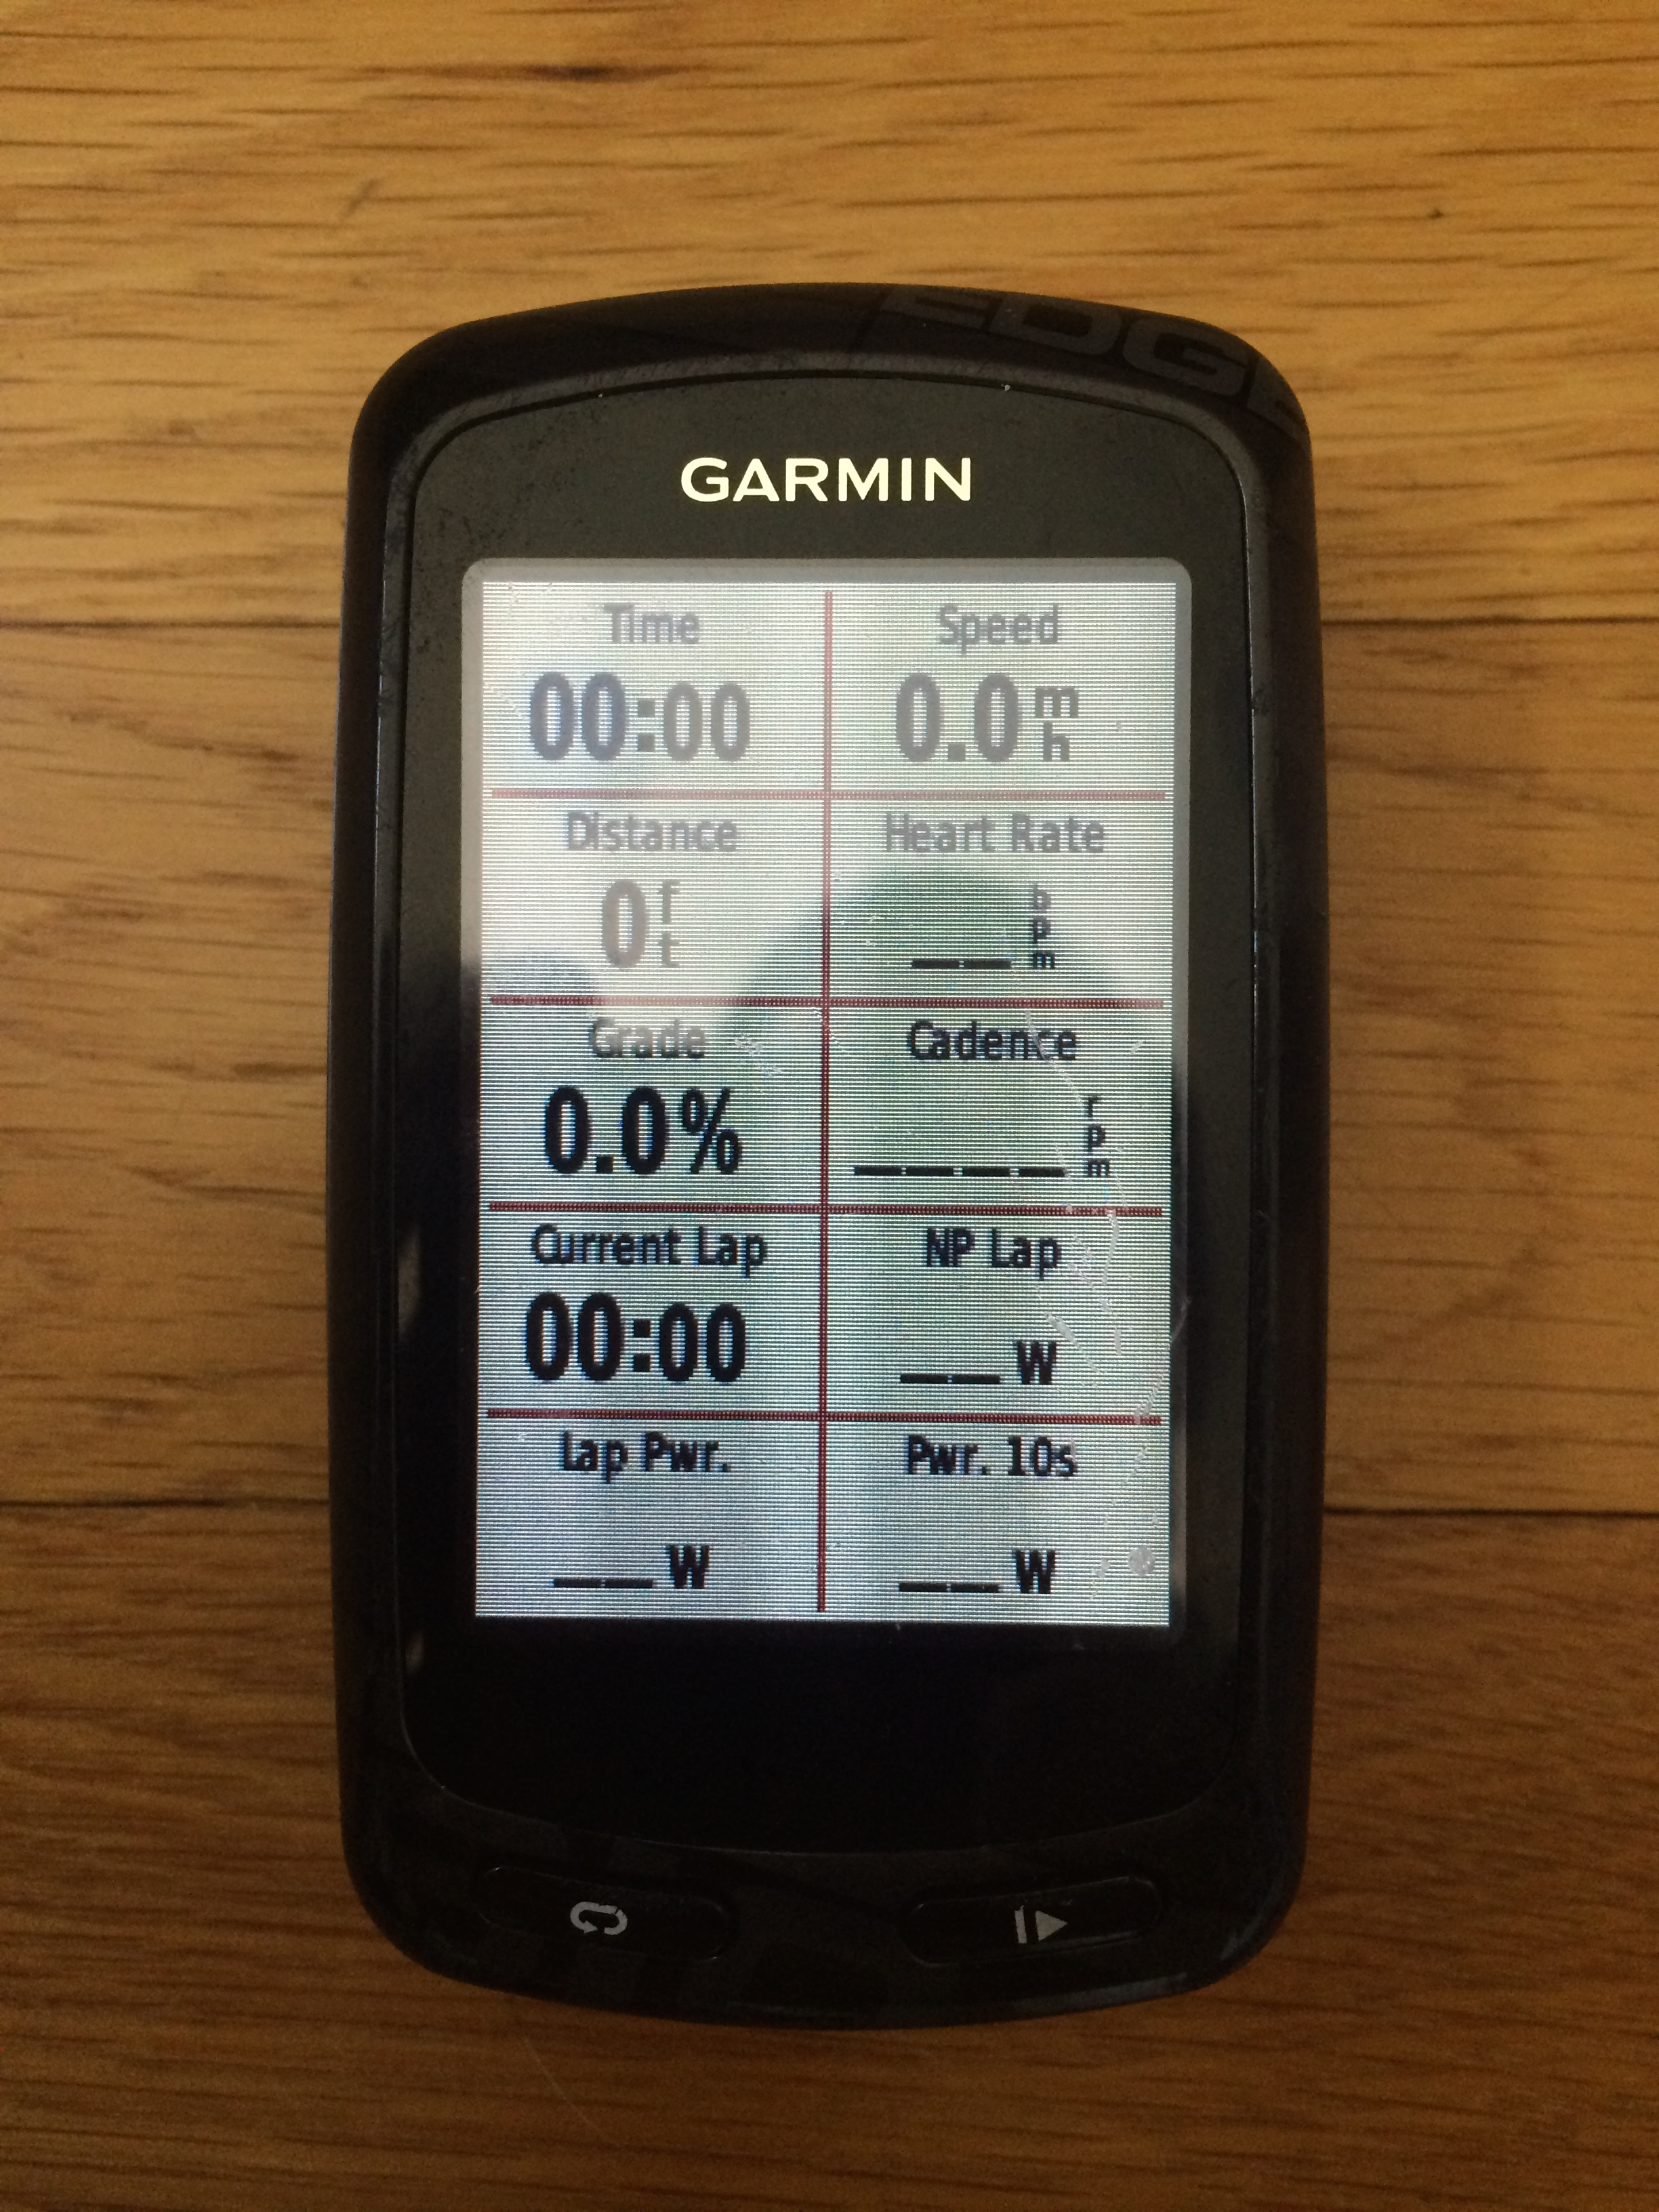 Garmin Power Meter : Racing smarter with a power meter the athletic time machine